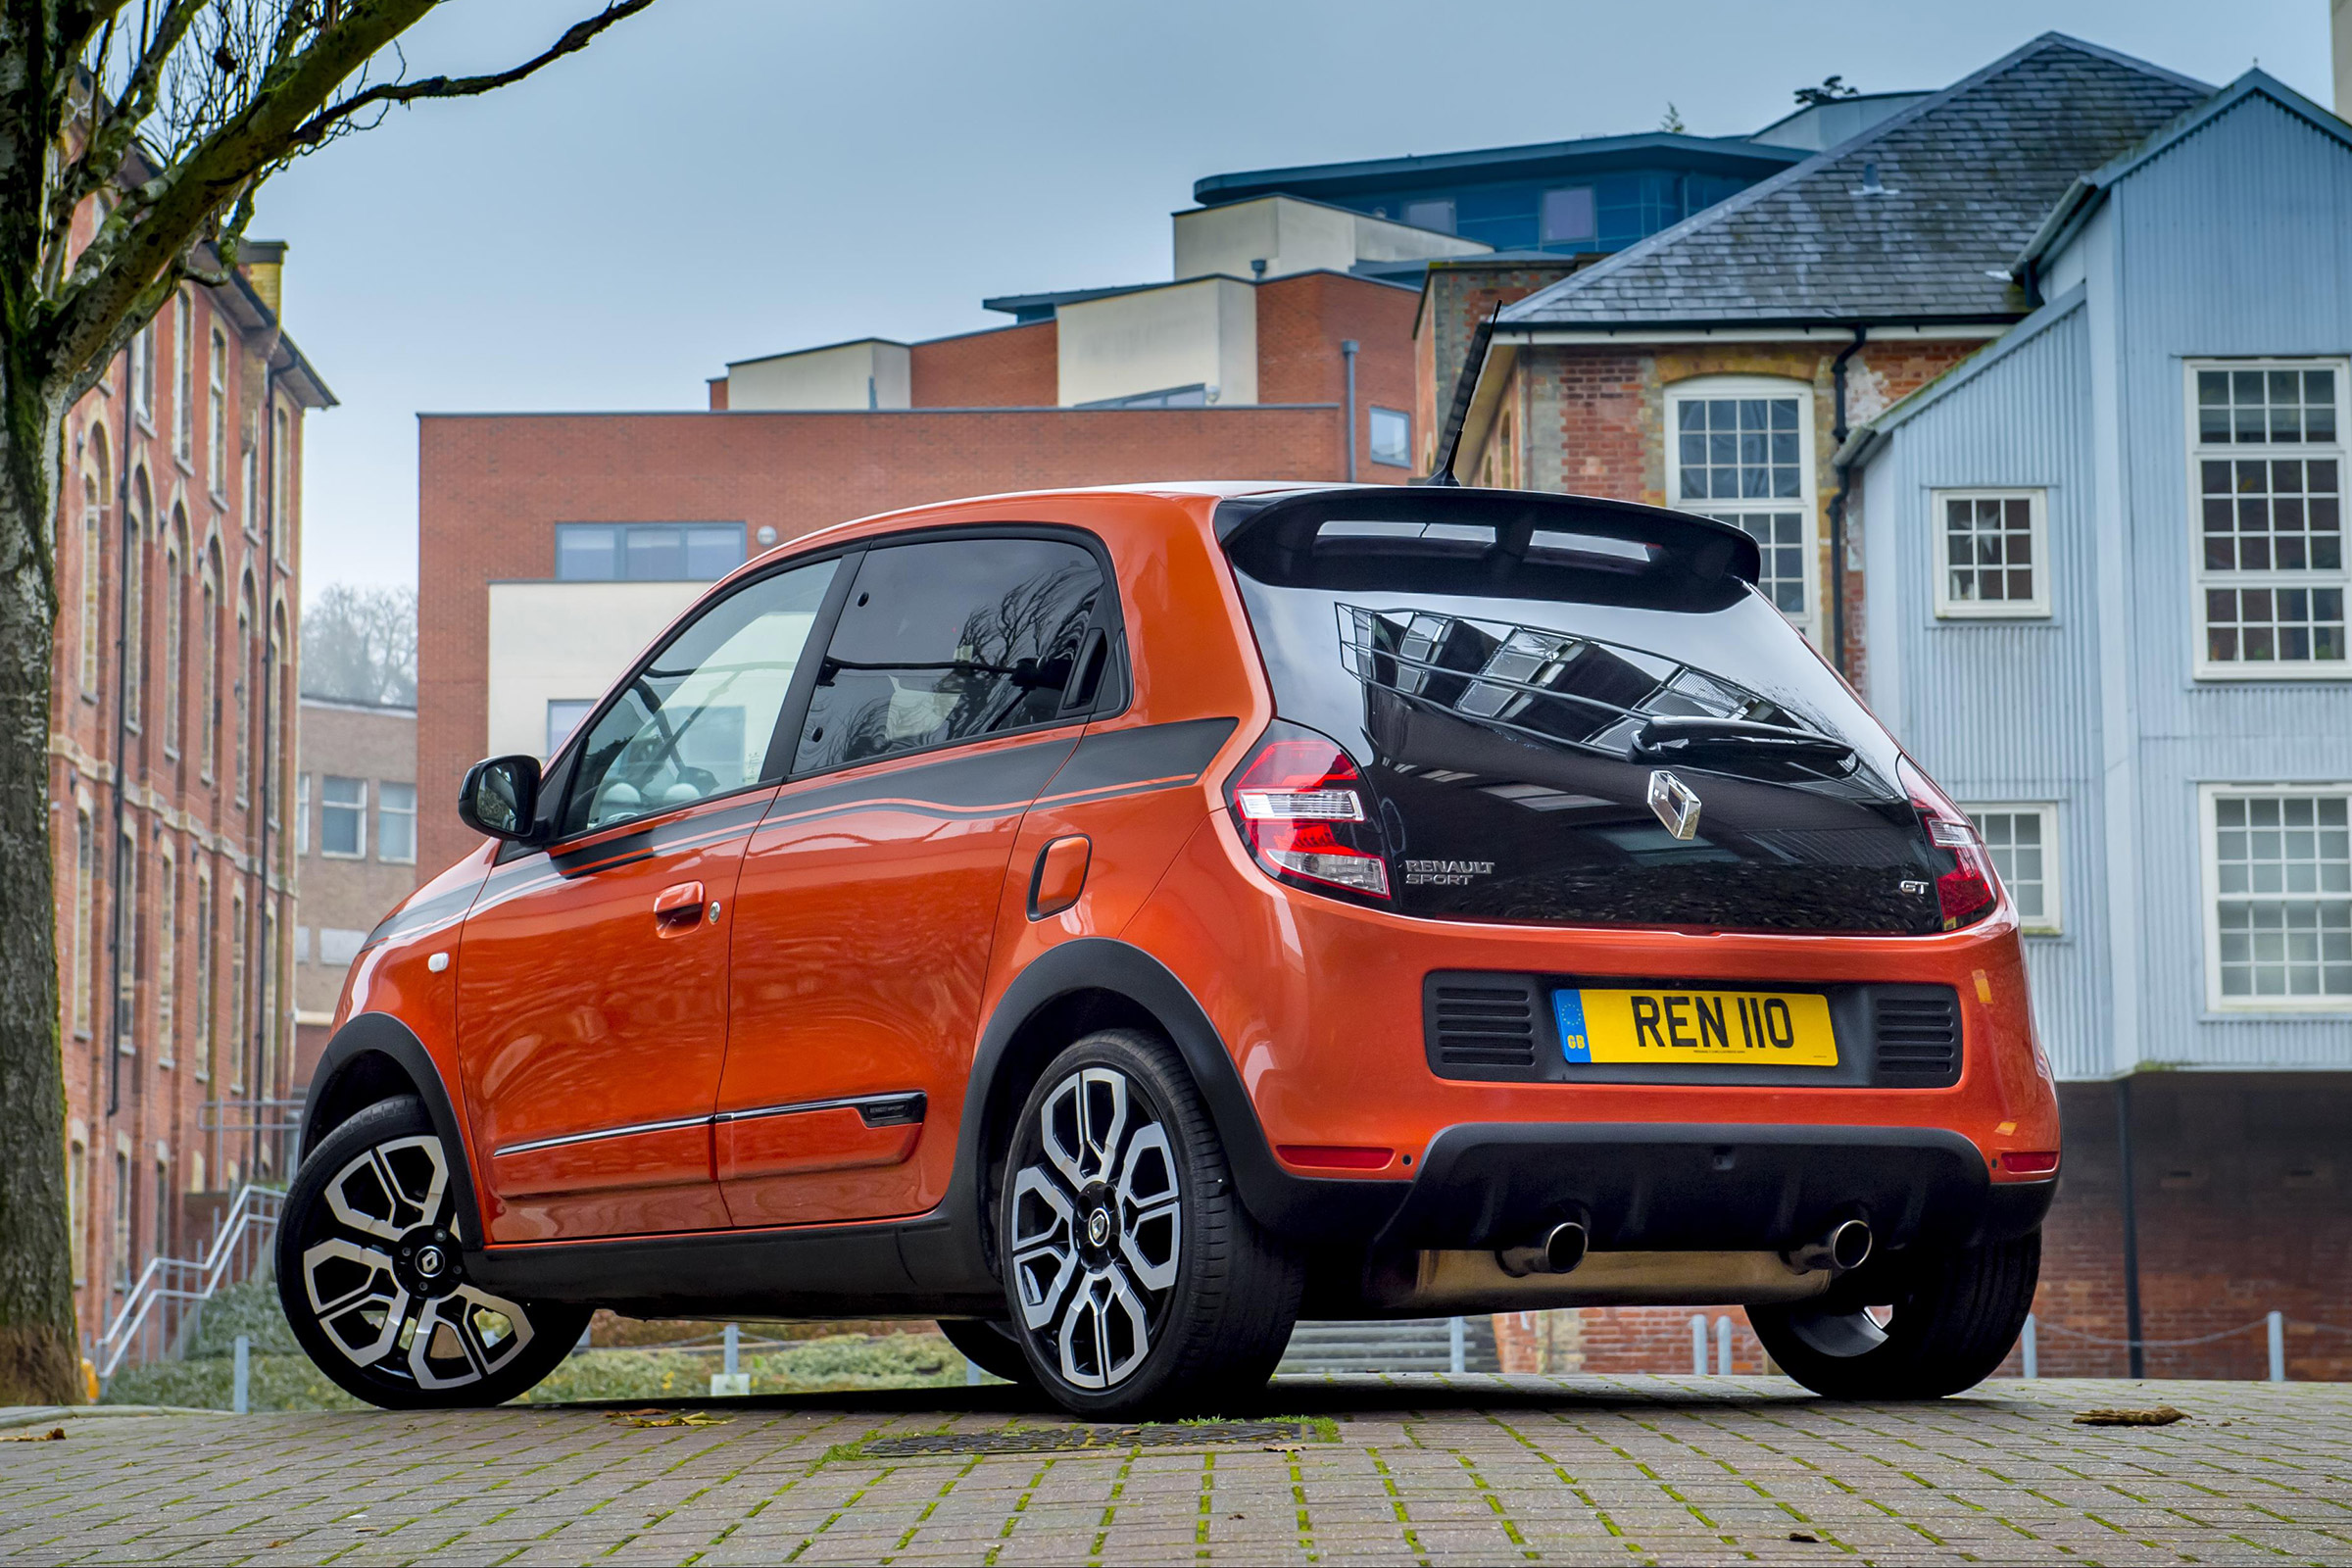 2017 Renault Twingo GT Exterior Rear And Side (Photo 2 of 20)